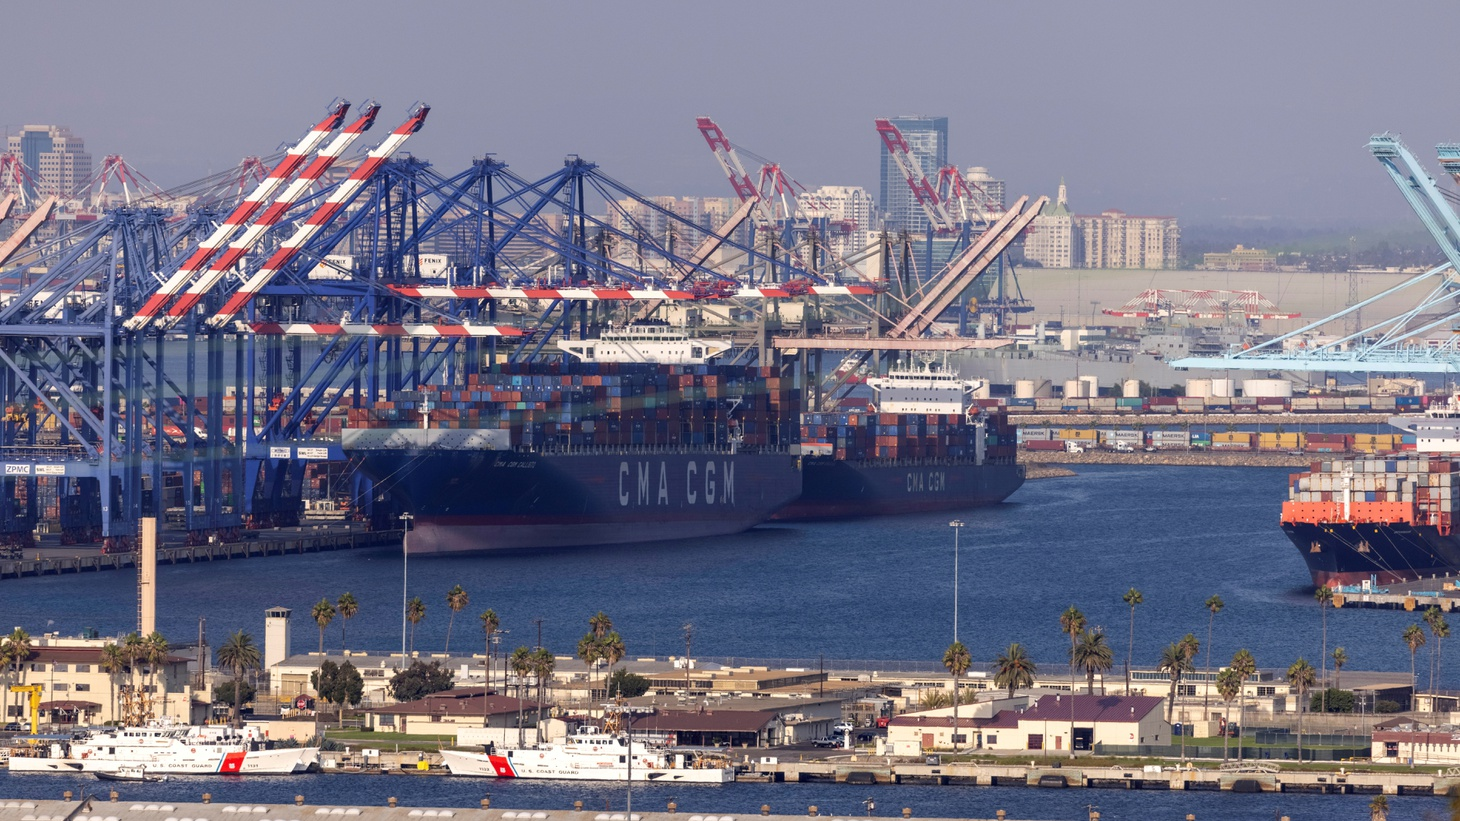 The congested Port of Los Angeles is shown in San Pedro, California, U.S., September 29, 2021.